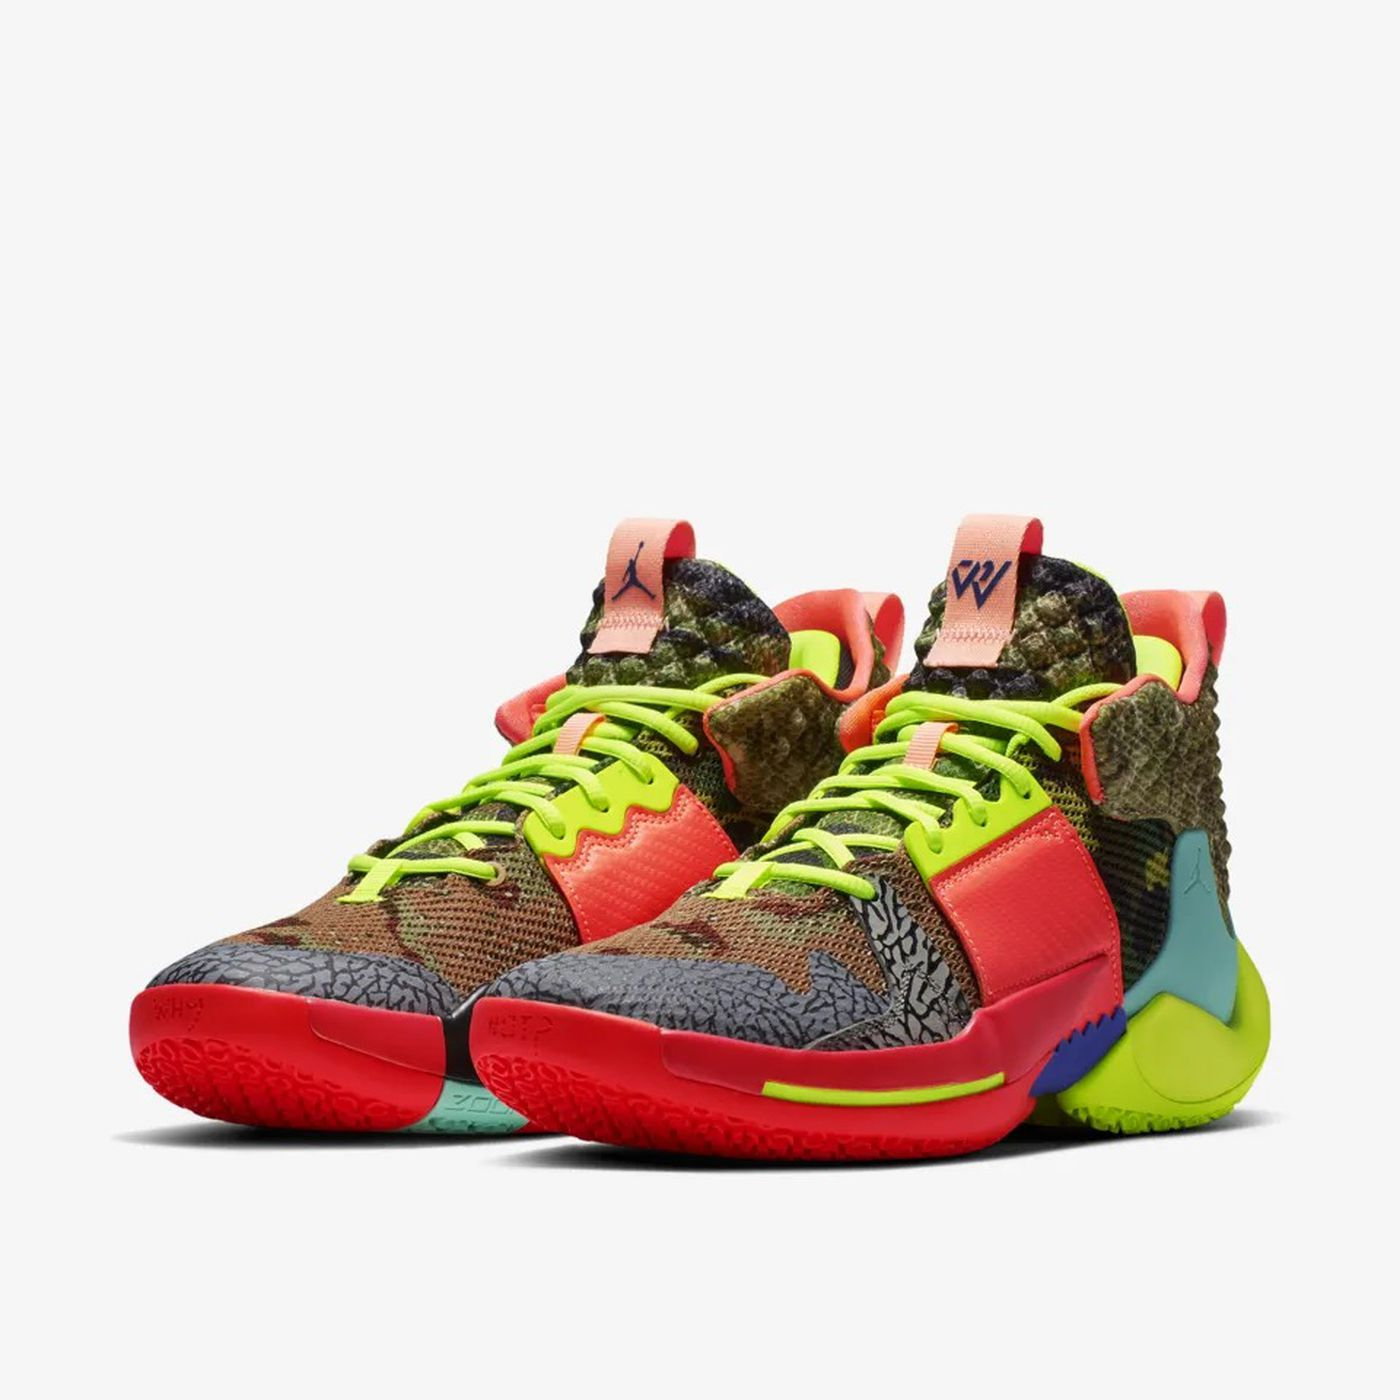 47c16019c7ecf7 Russell Westbrook s latest Why Not Zer0.2 shoe will debut during All-Star  Weekend